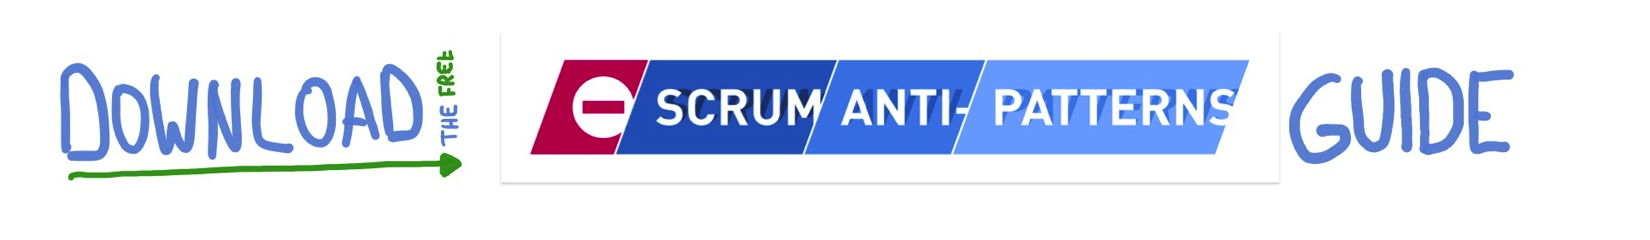 Download the free Scrum Anti-Patterns Guide